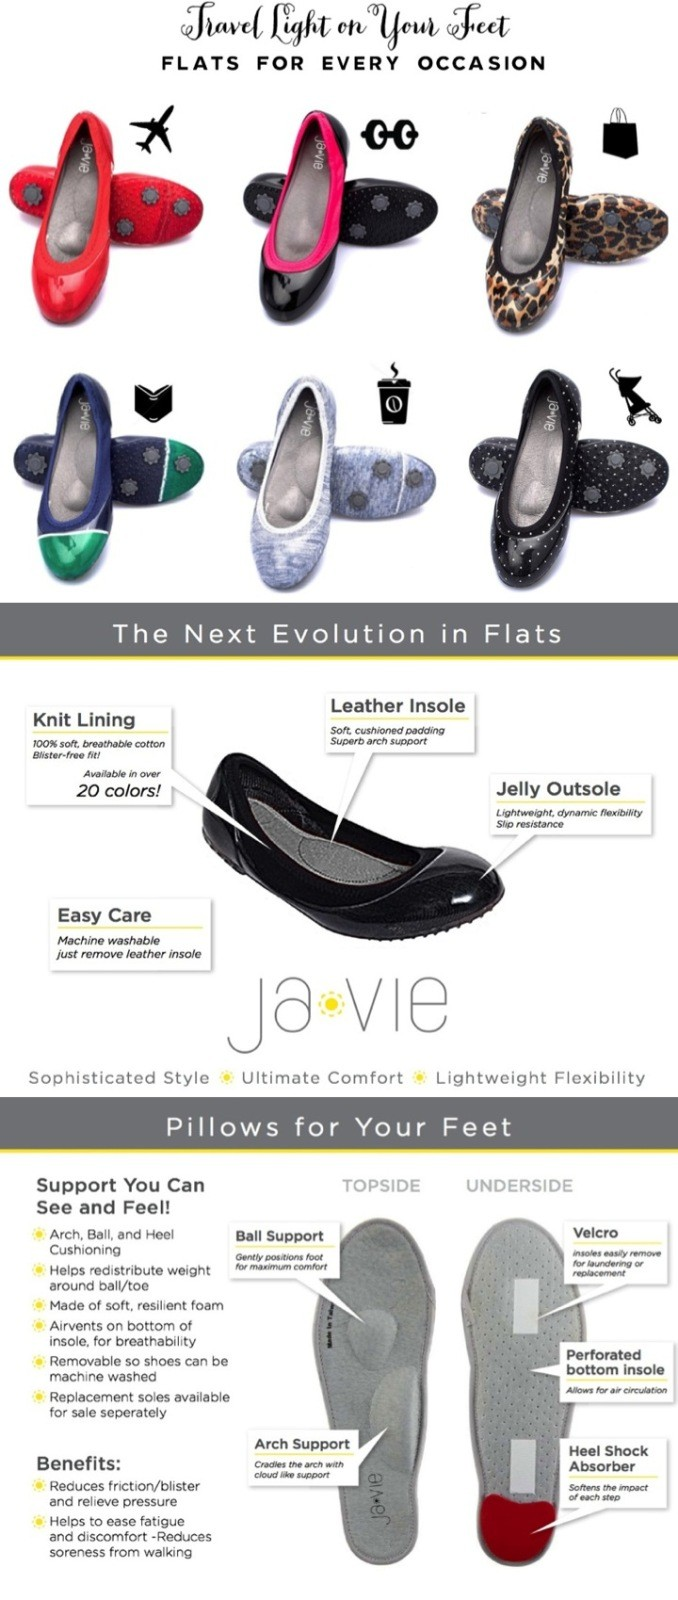 ja-vie the flats for every ocassion